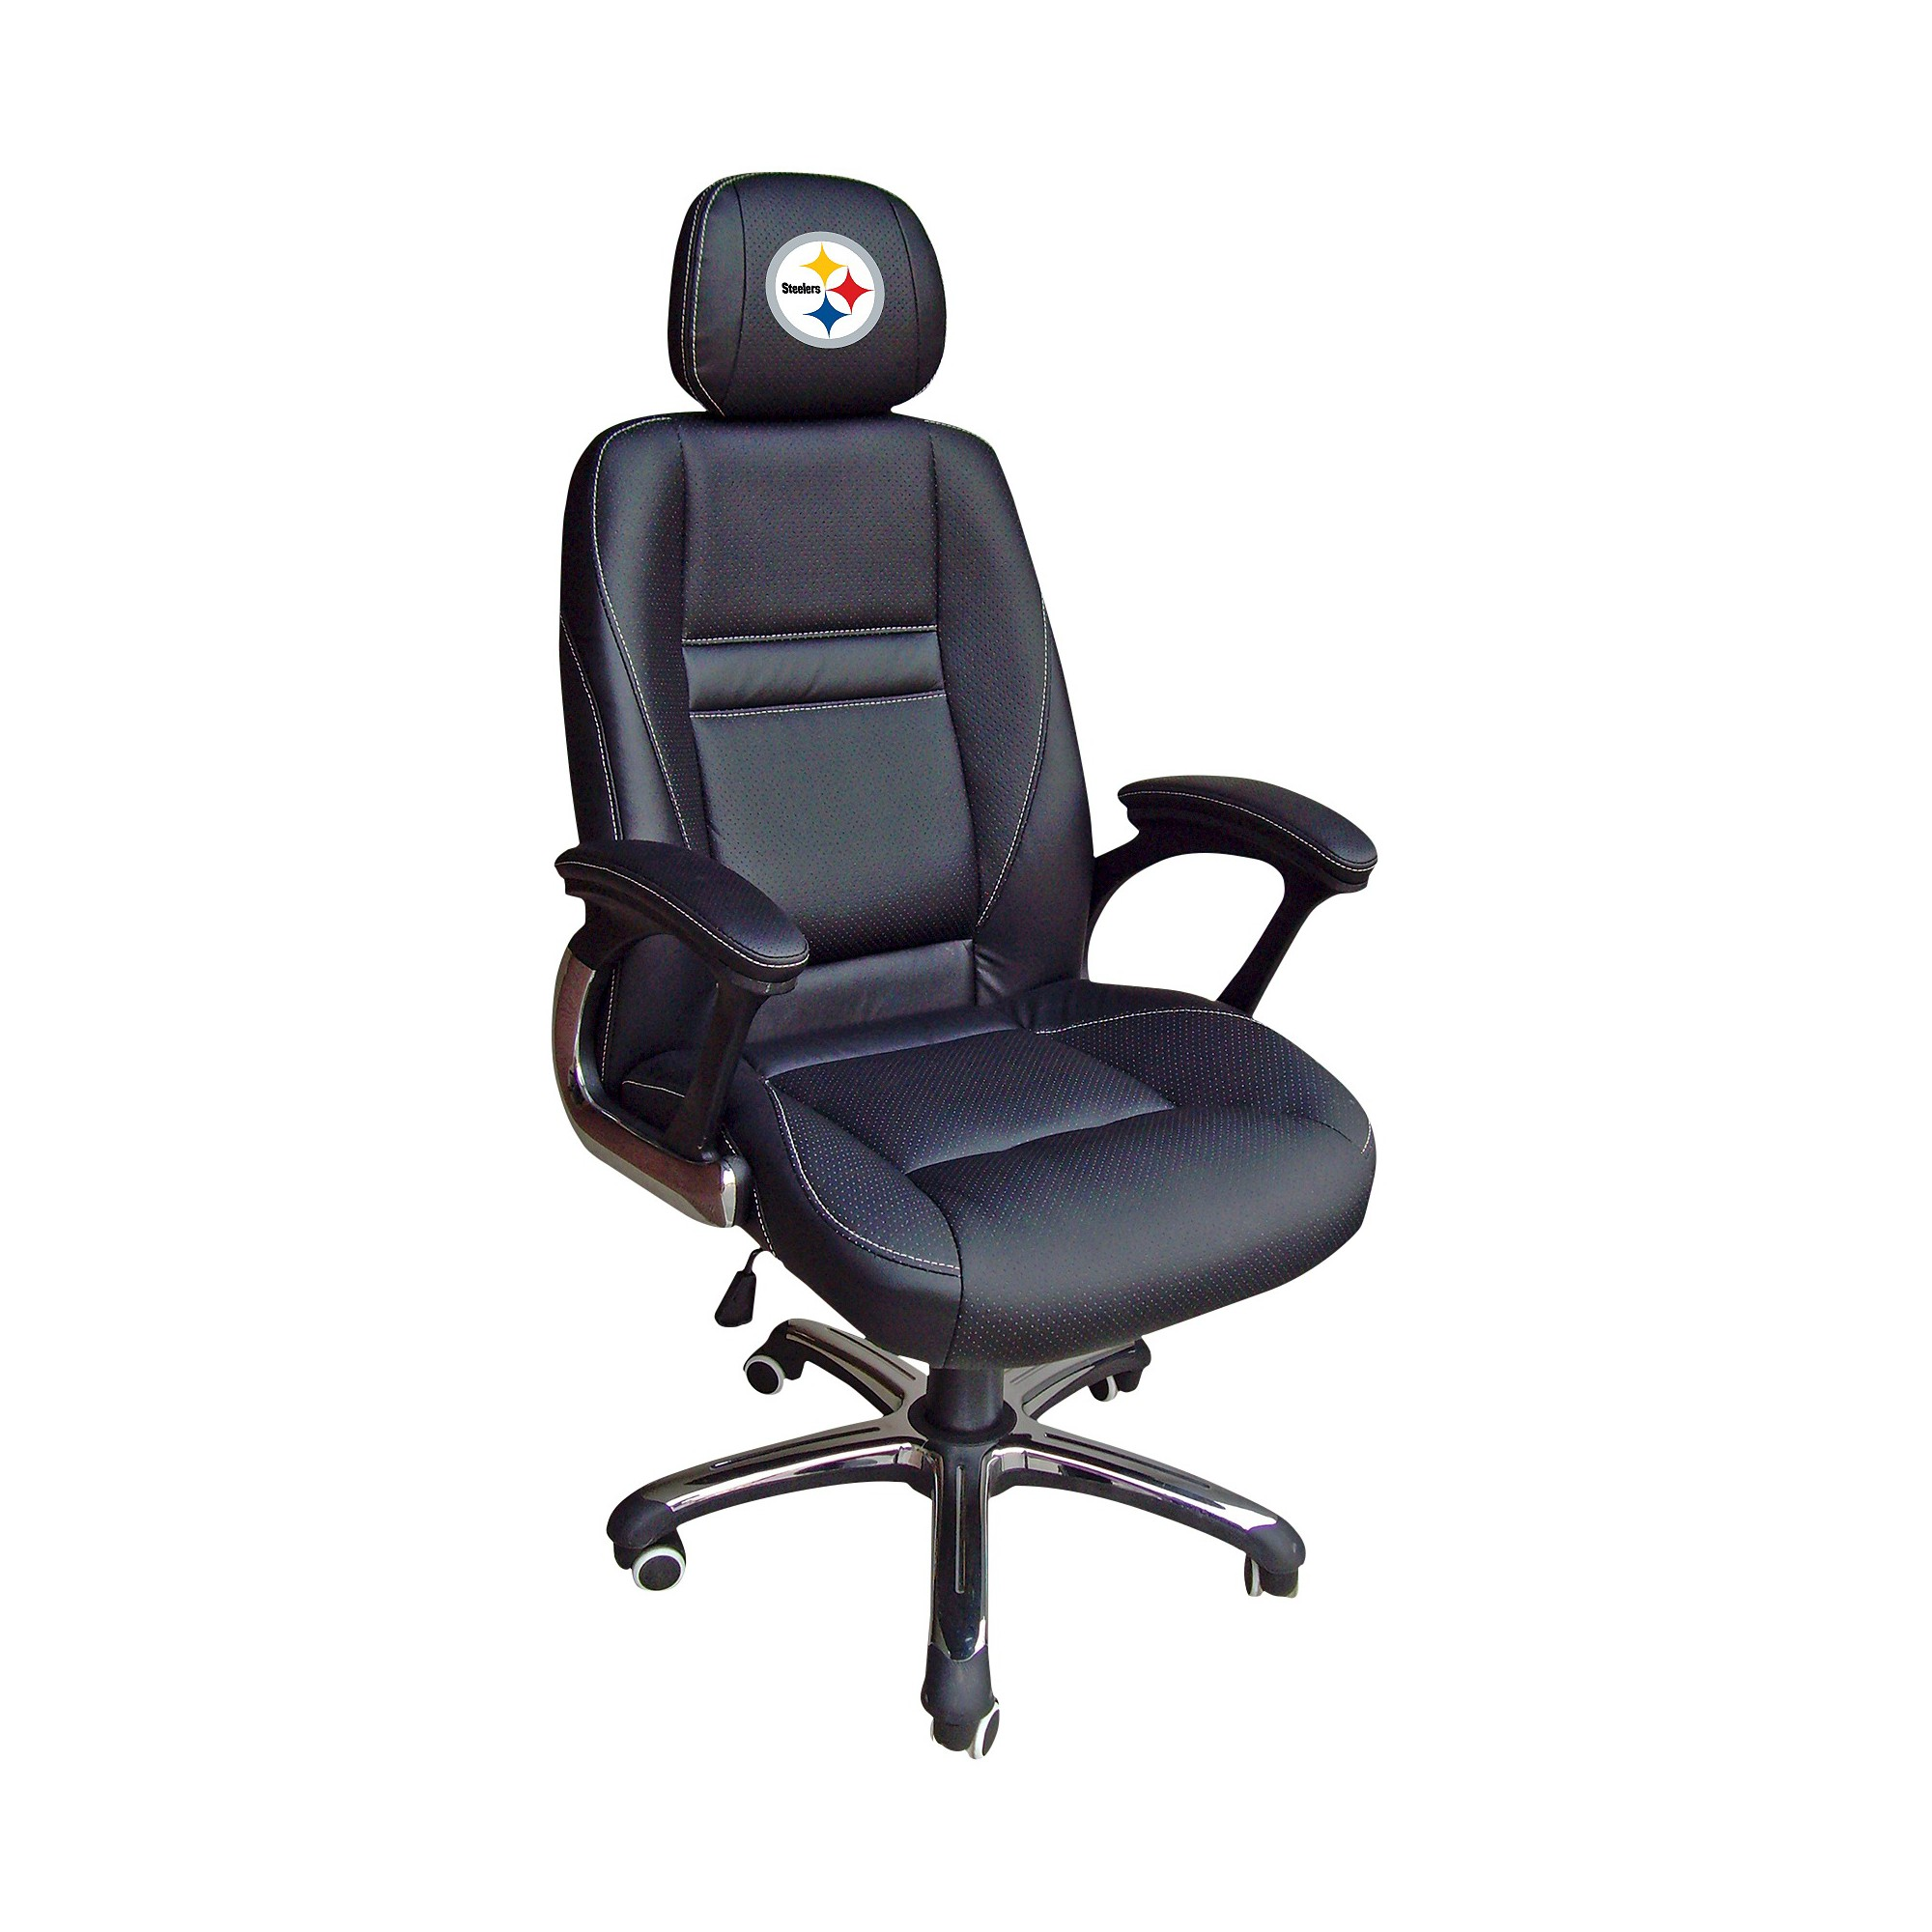 Nfl Leather Office Chair Pittsburgh Steelers Black